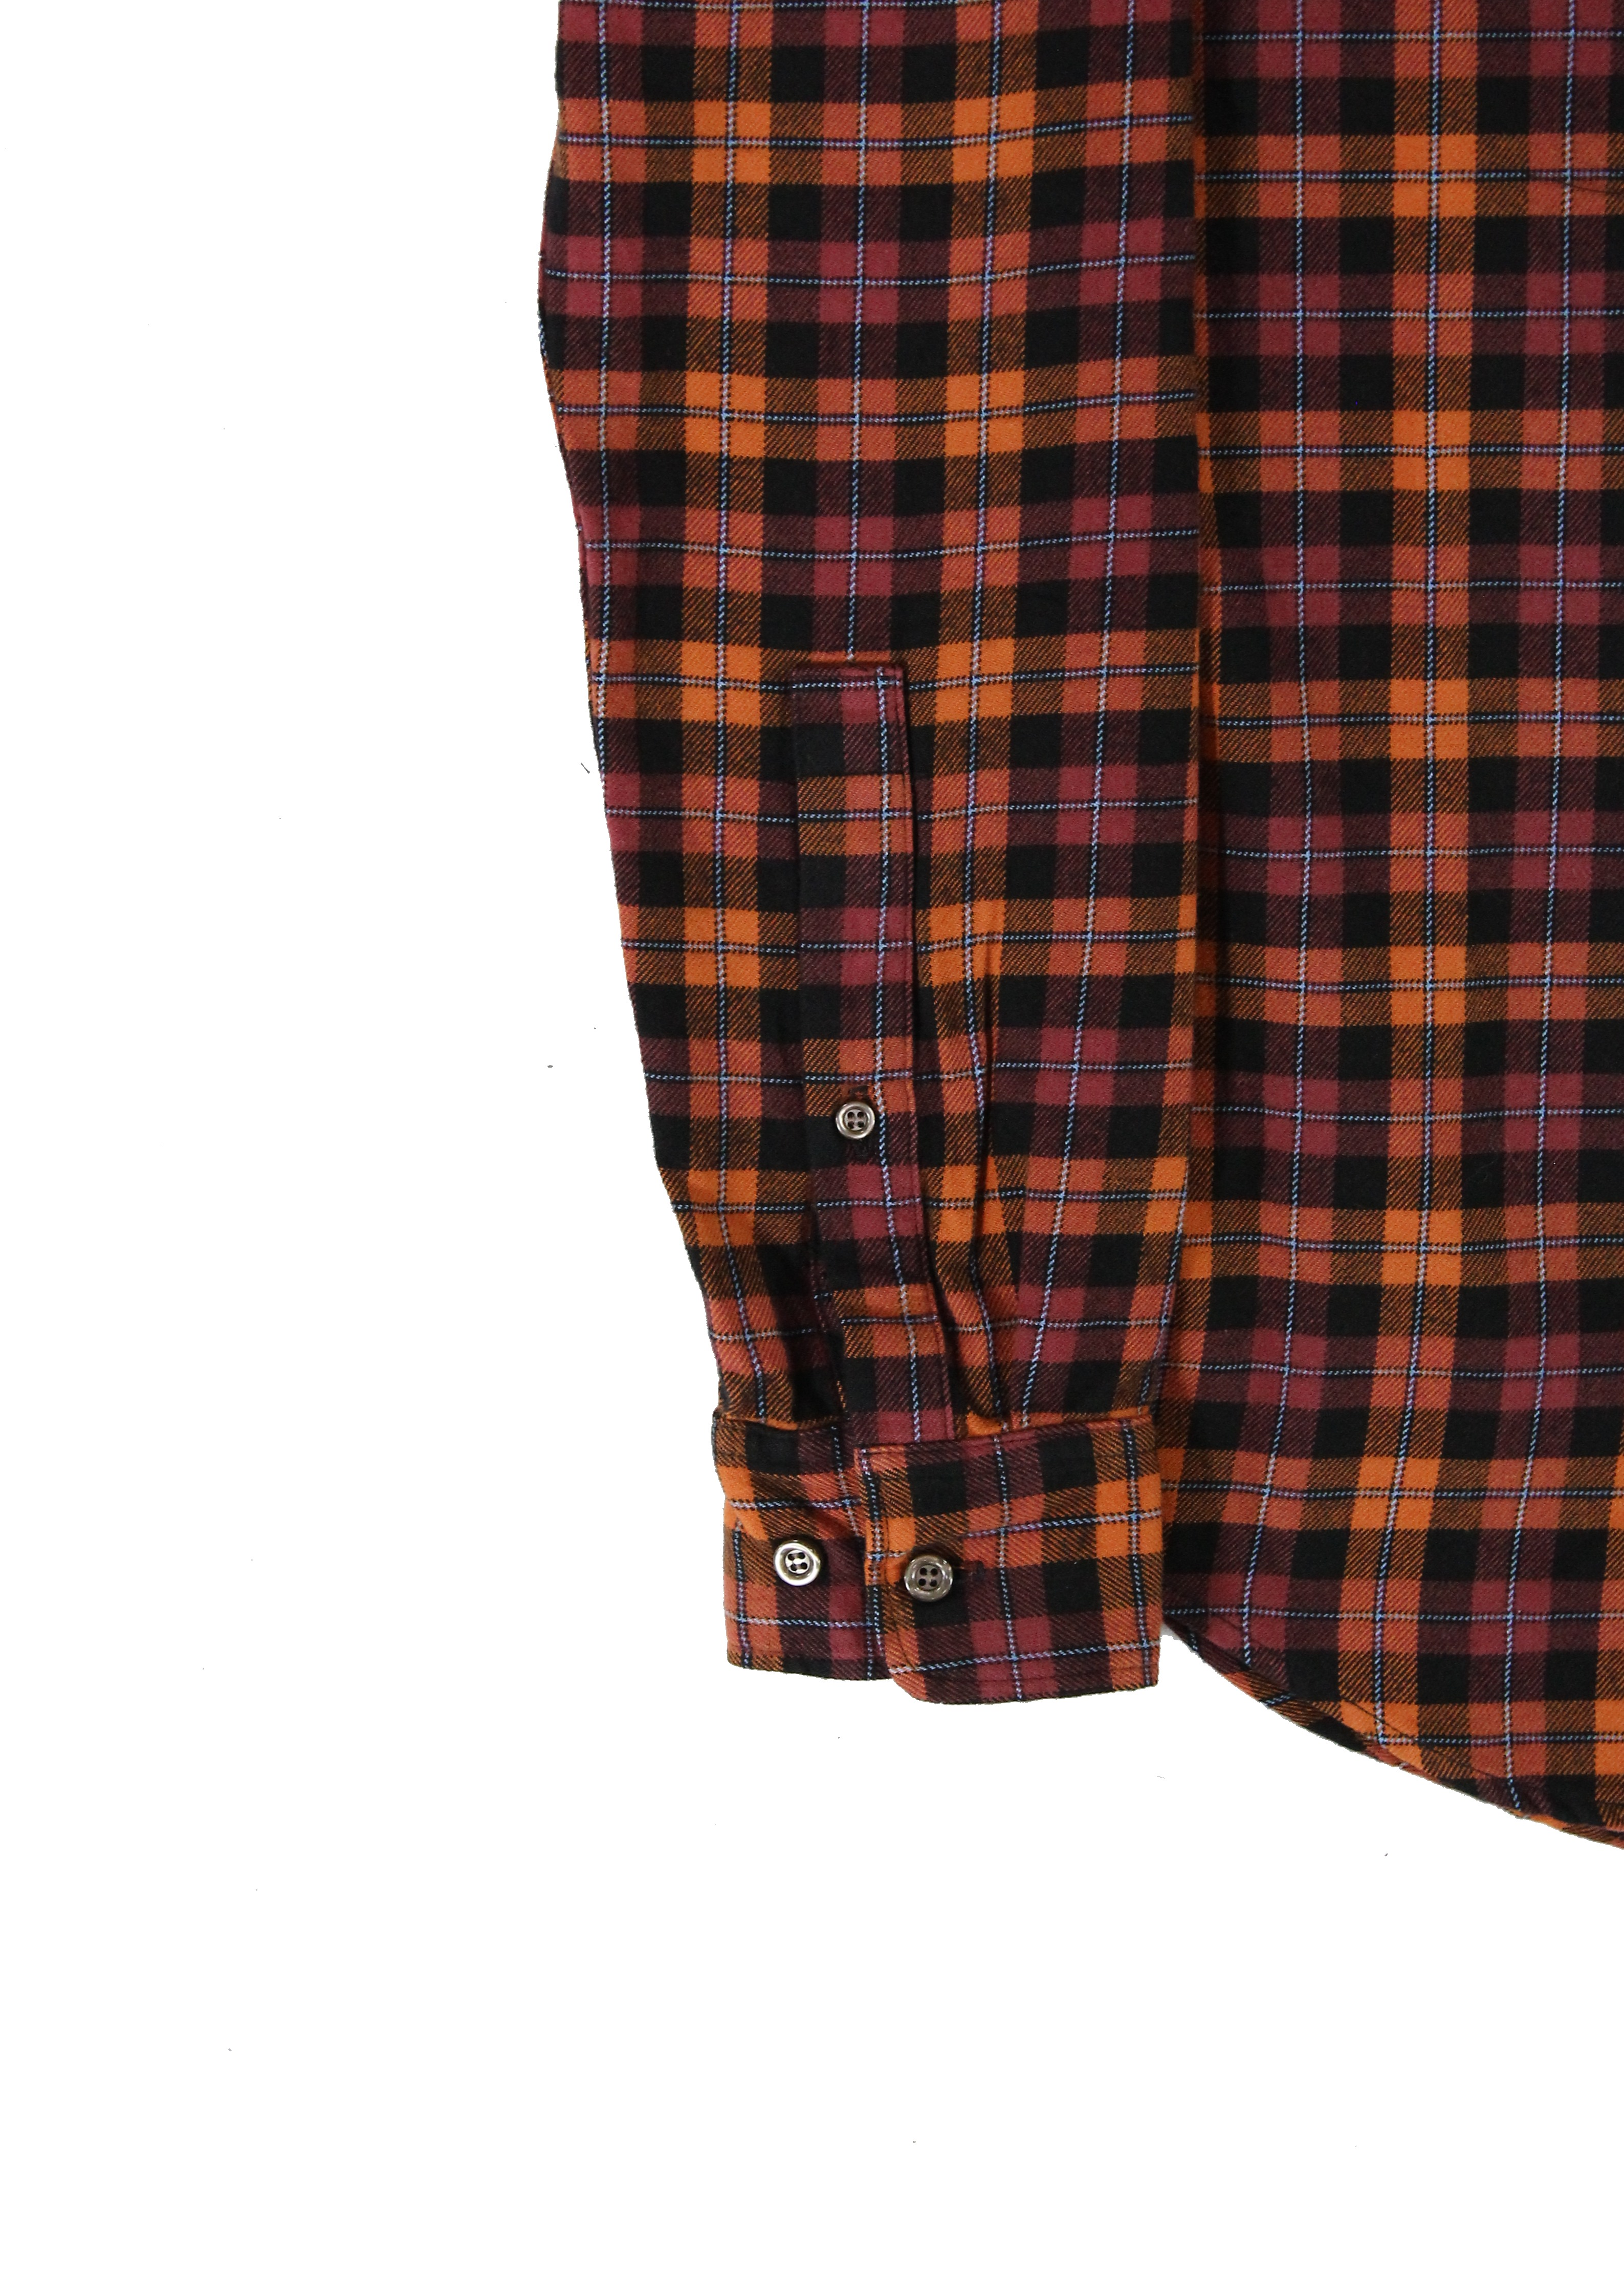 American-Apparel-NEW-Mens-Plaid-Flannel-Lumberjack-Classic-Fit-Button-Down-Shirt thumbnail 14